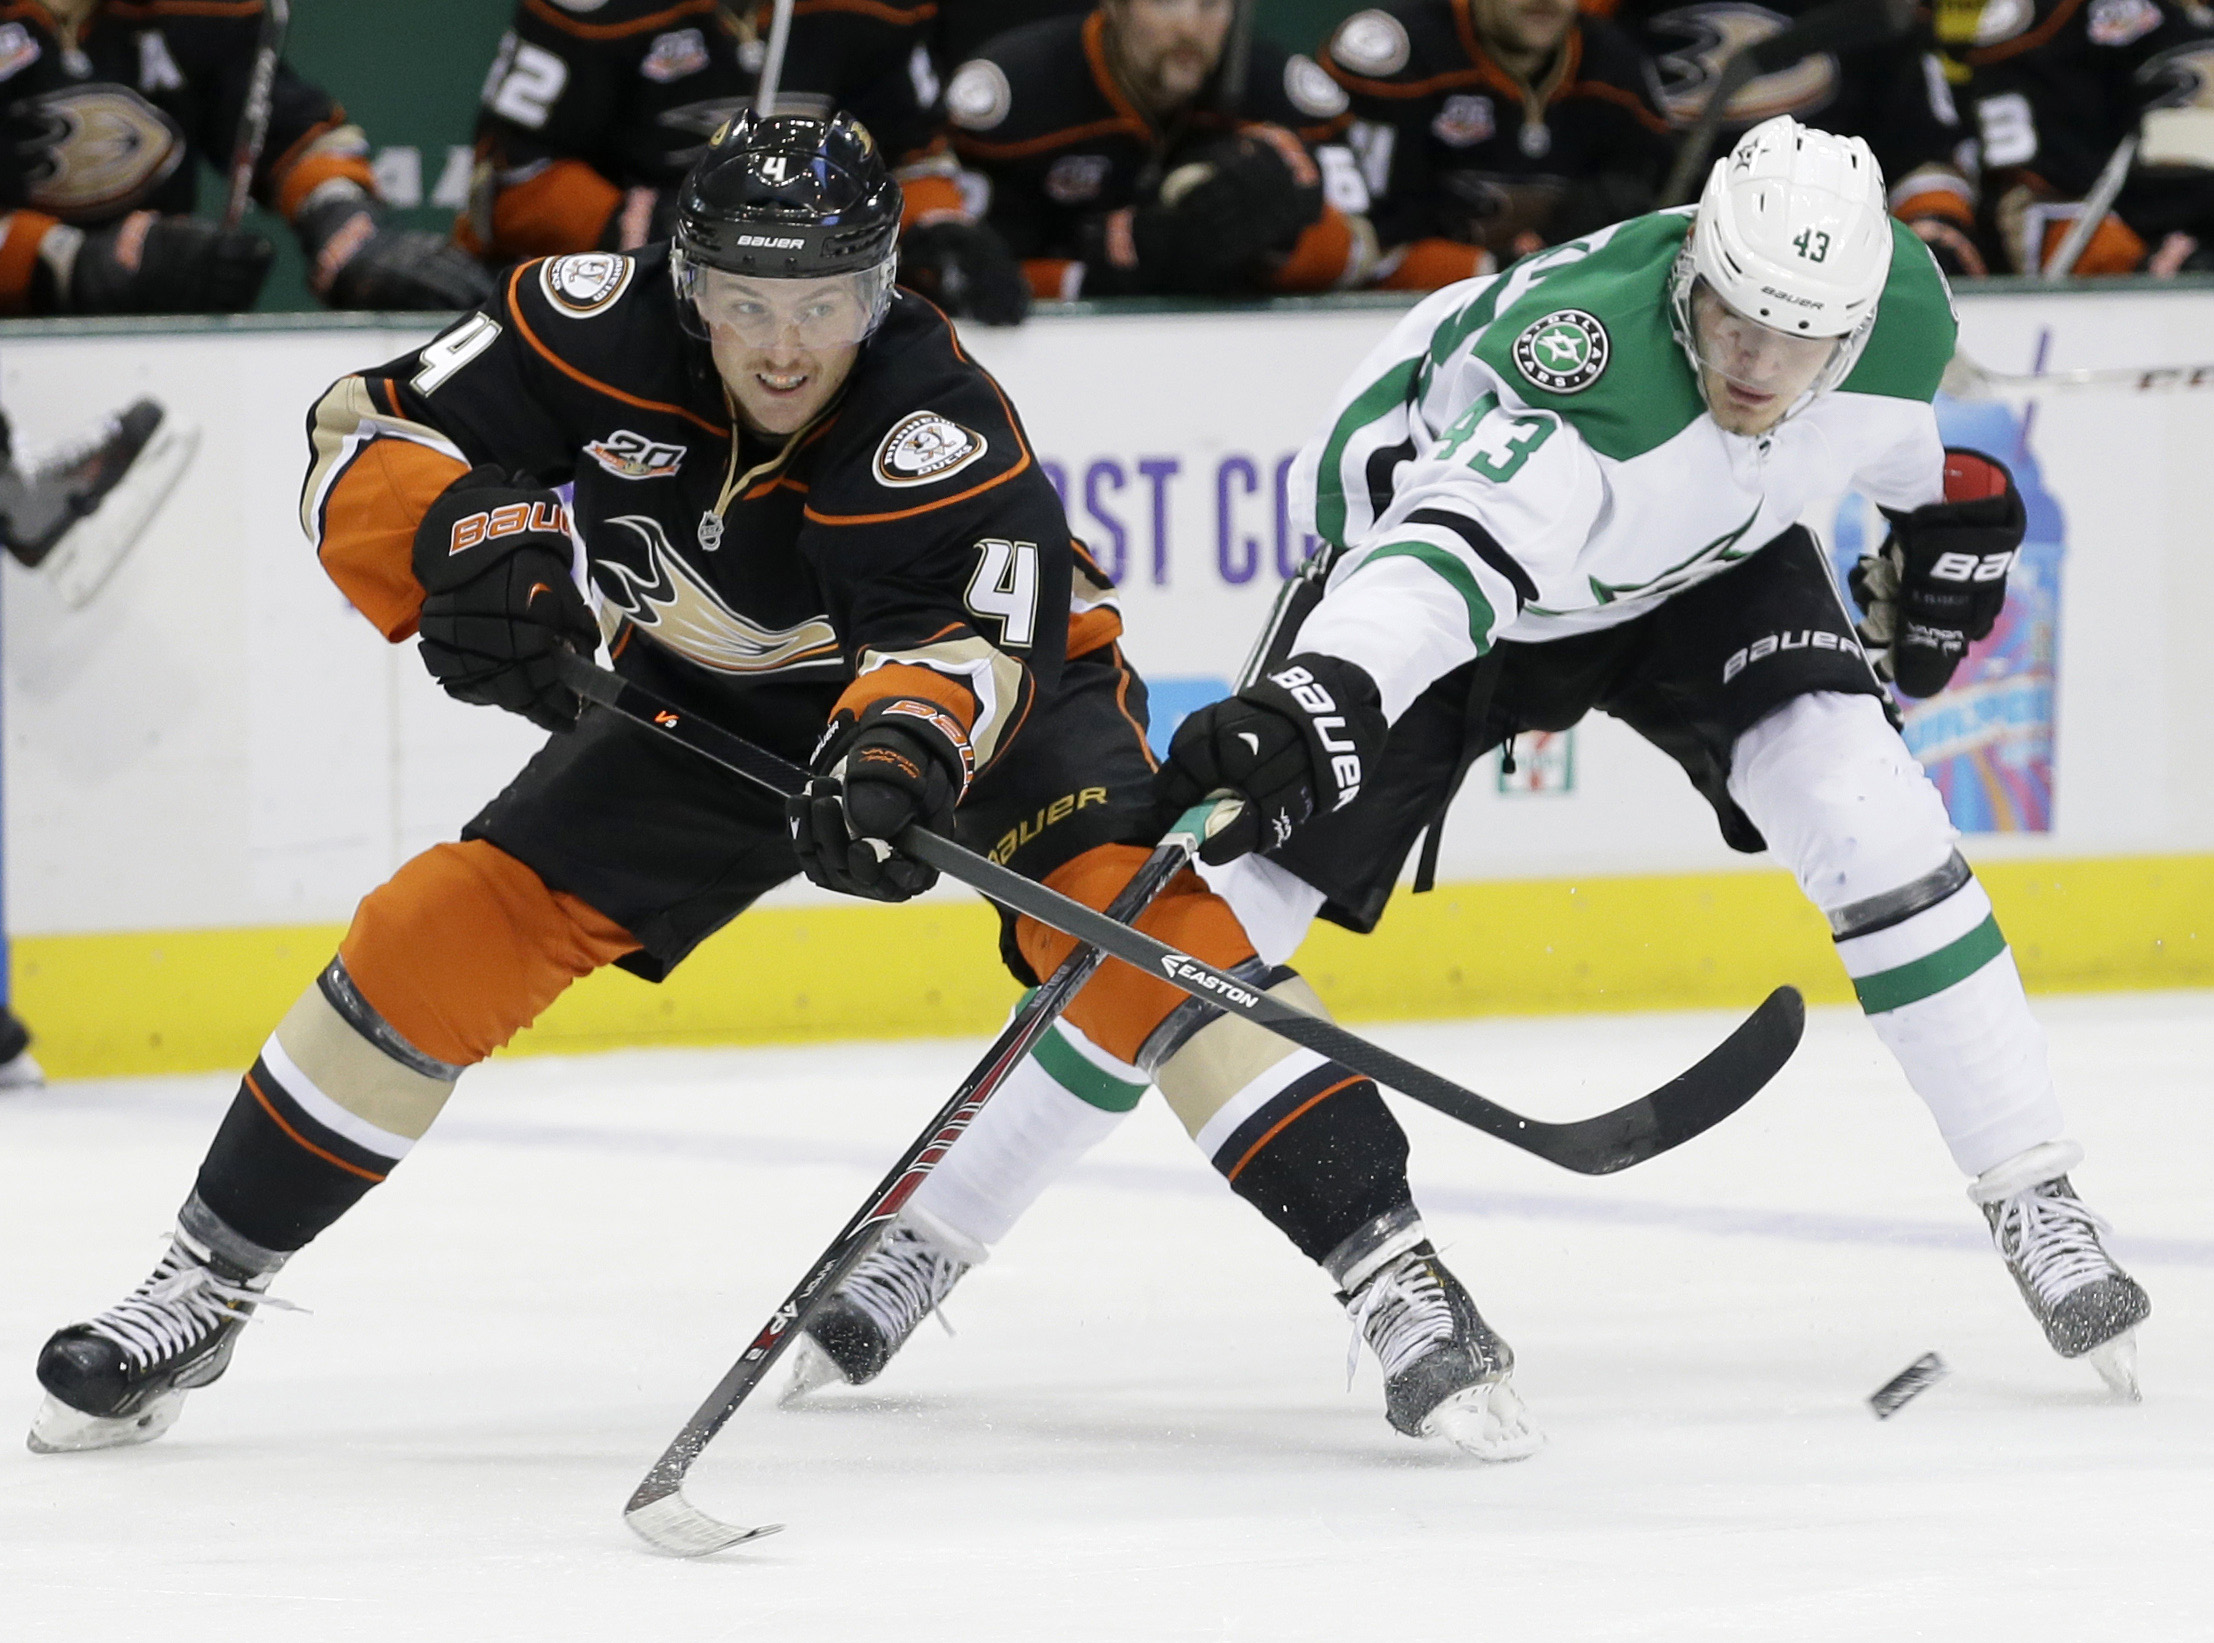 Anaheim Ducks defenseman Cam Fowler (4) passes the puck as Dallas Stars right wing Valeri Nichushkin (43) tries to block during the first period of an NHL hockey game in Dallas, Tuesday, Nov. 26, 2013